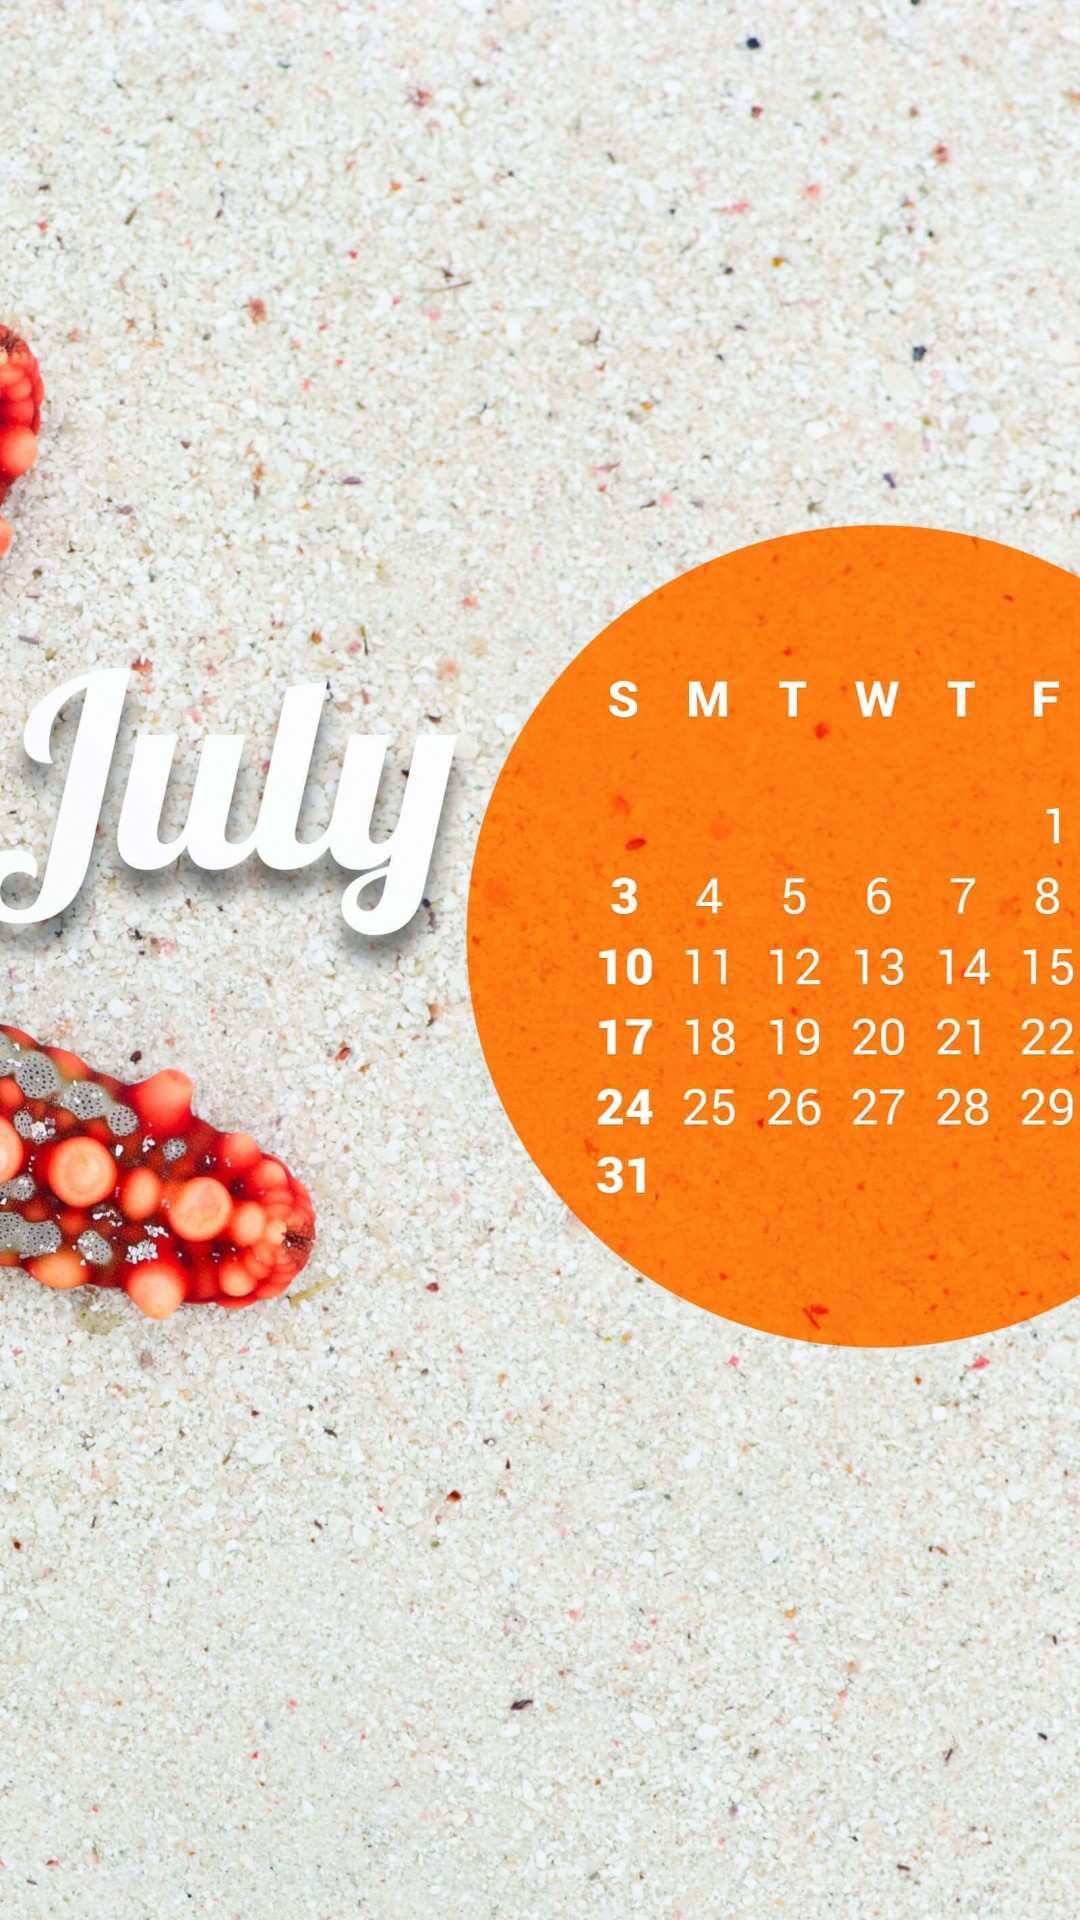 July 2016 Calendar Wallpaper for Google Nexus 5X